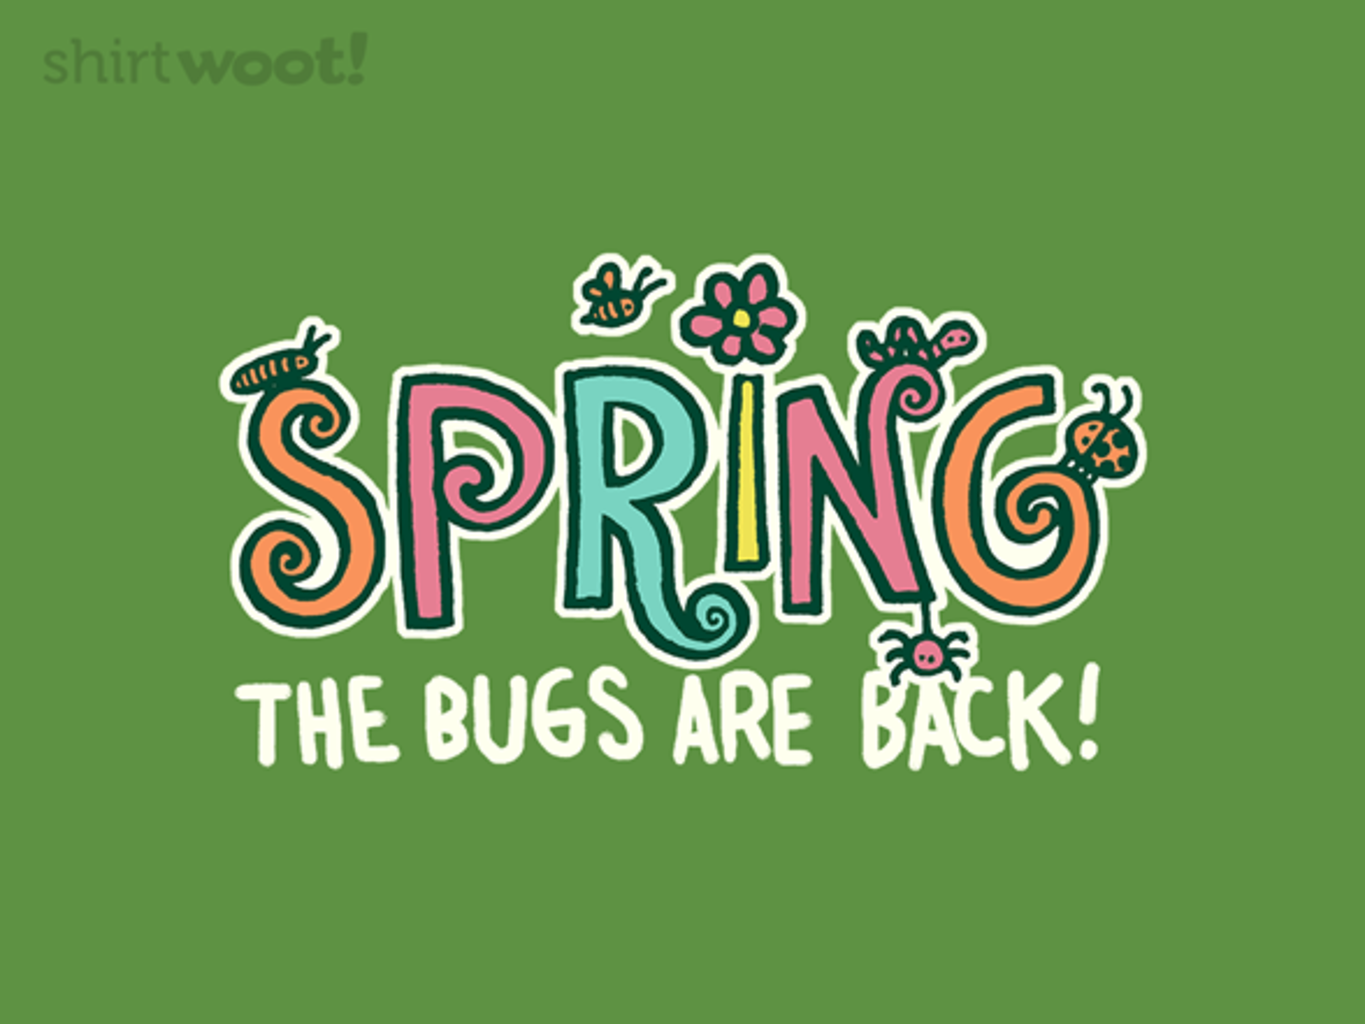 Woot!: The Bugs Are Back